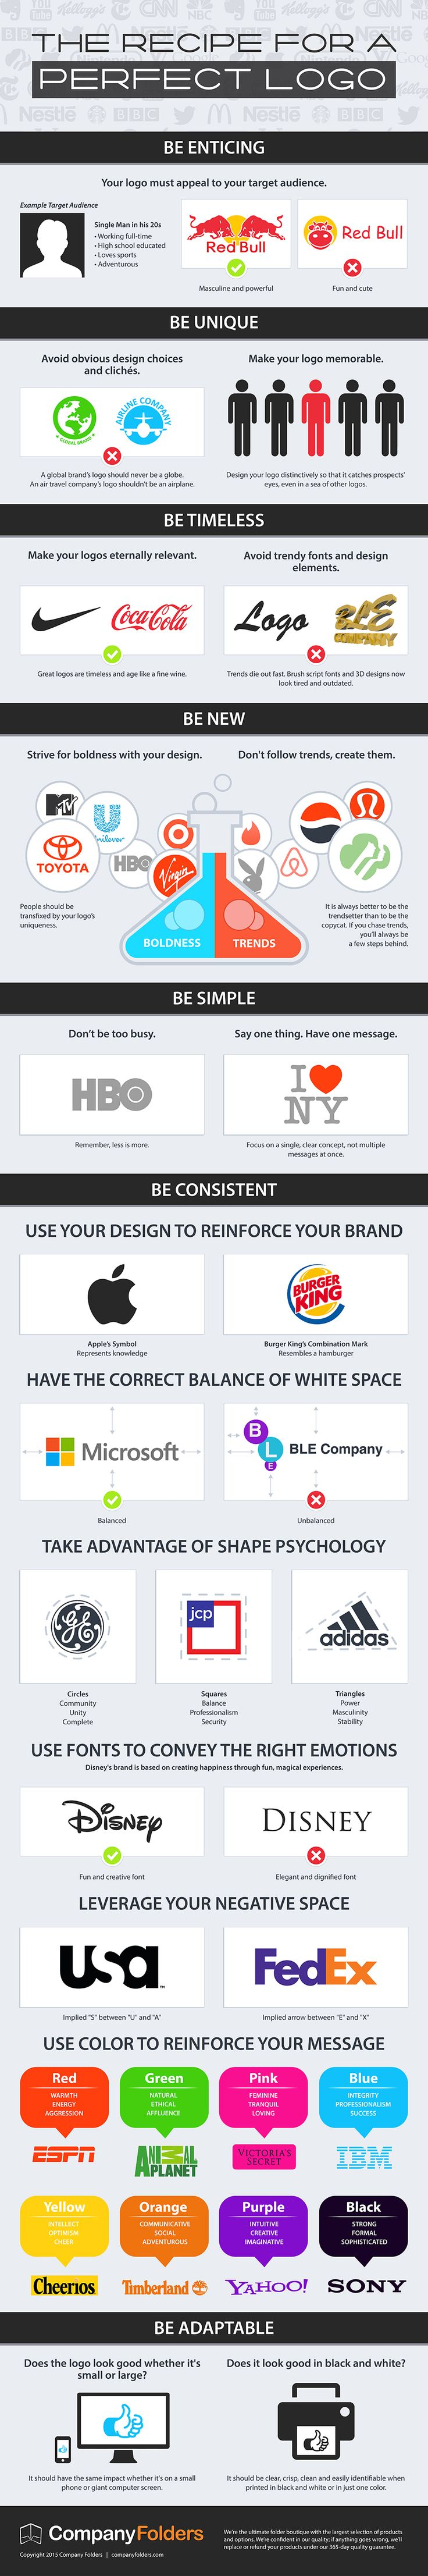 How to Design the Perfect Business Logo